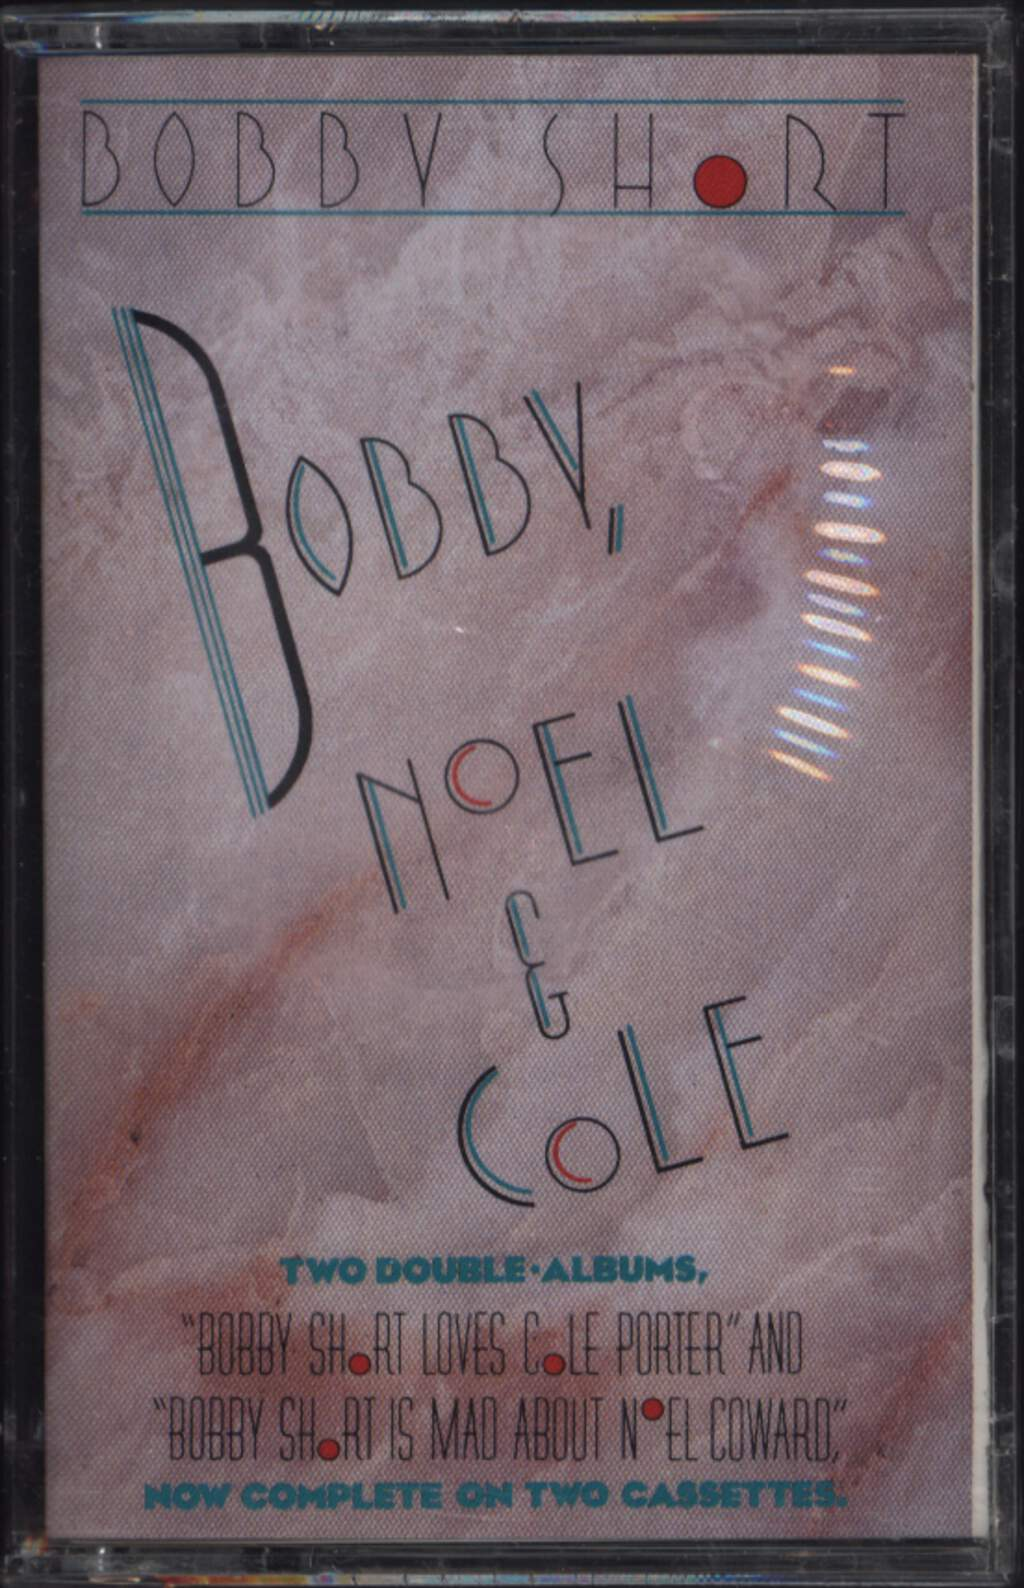 Bobby Short: Bobby Short Loves Cole Porter / Bobby Short Is Mad About Noel Coward, 2×Tape